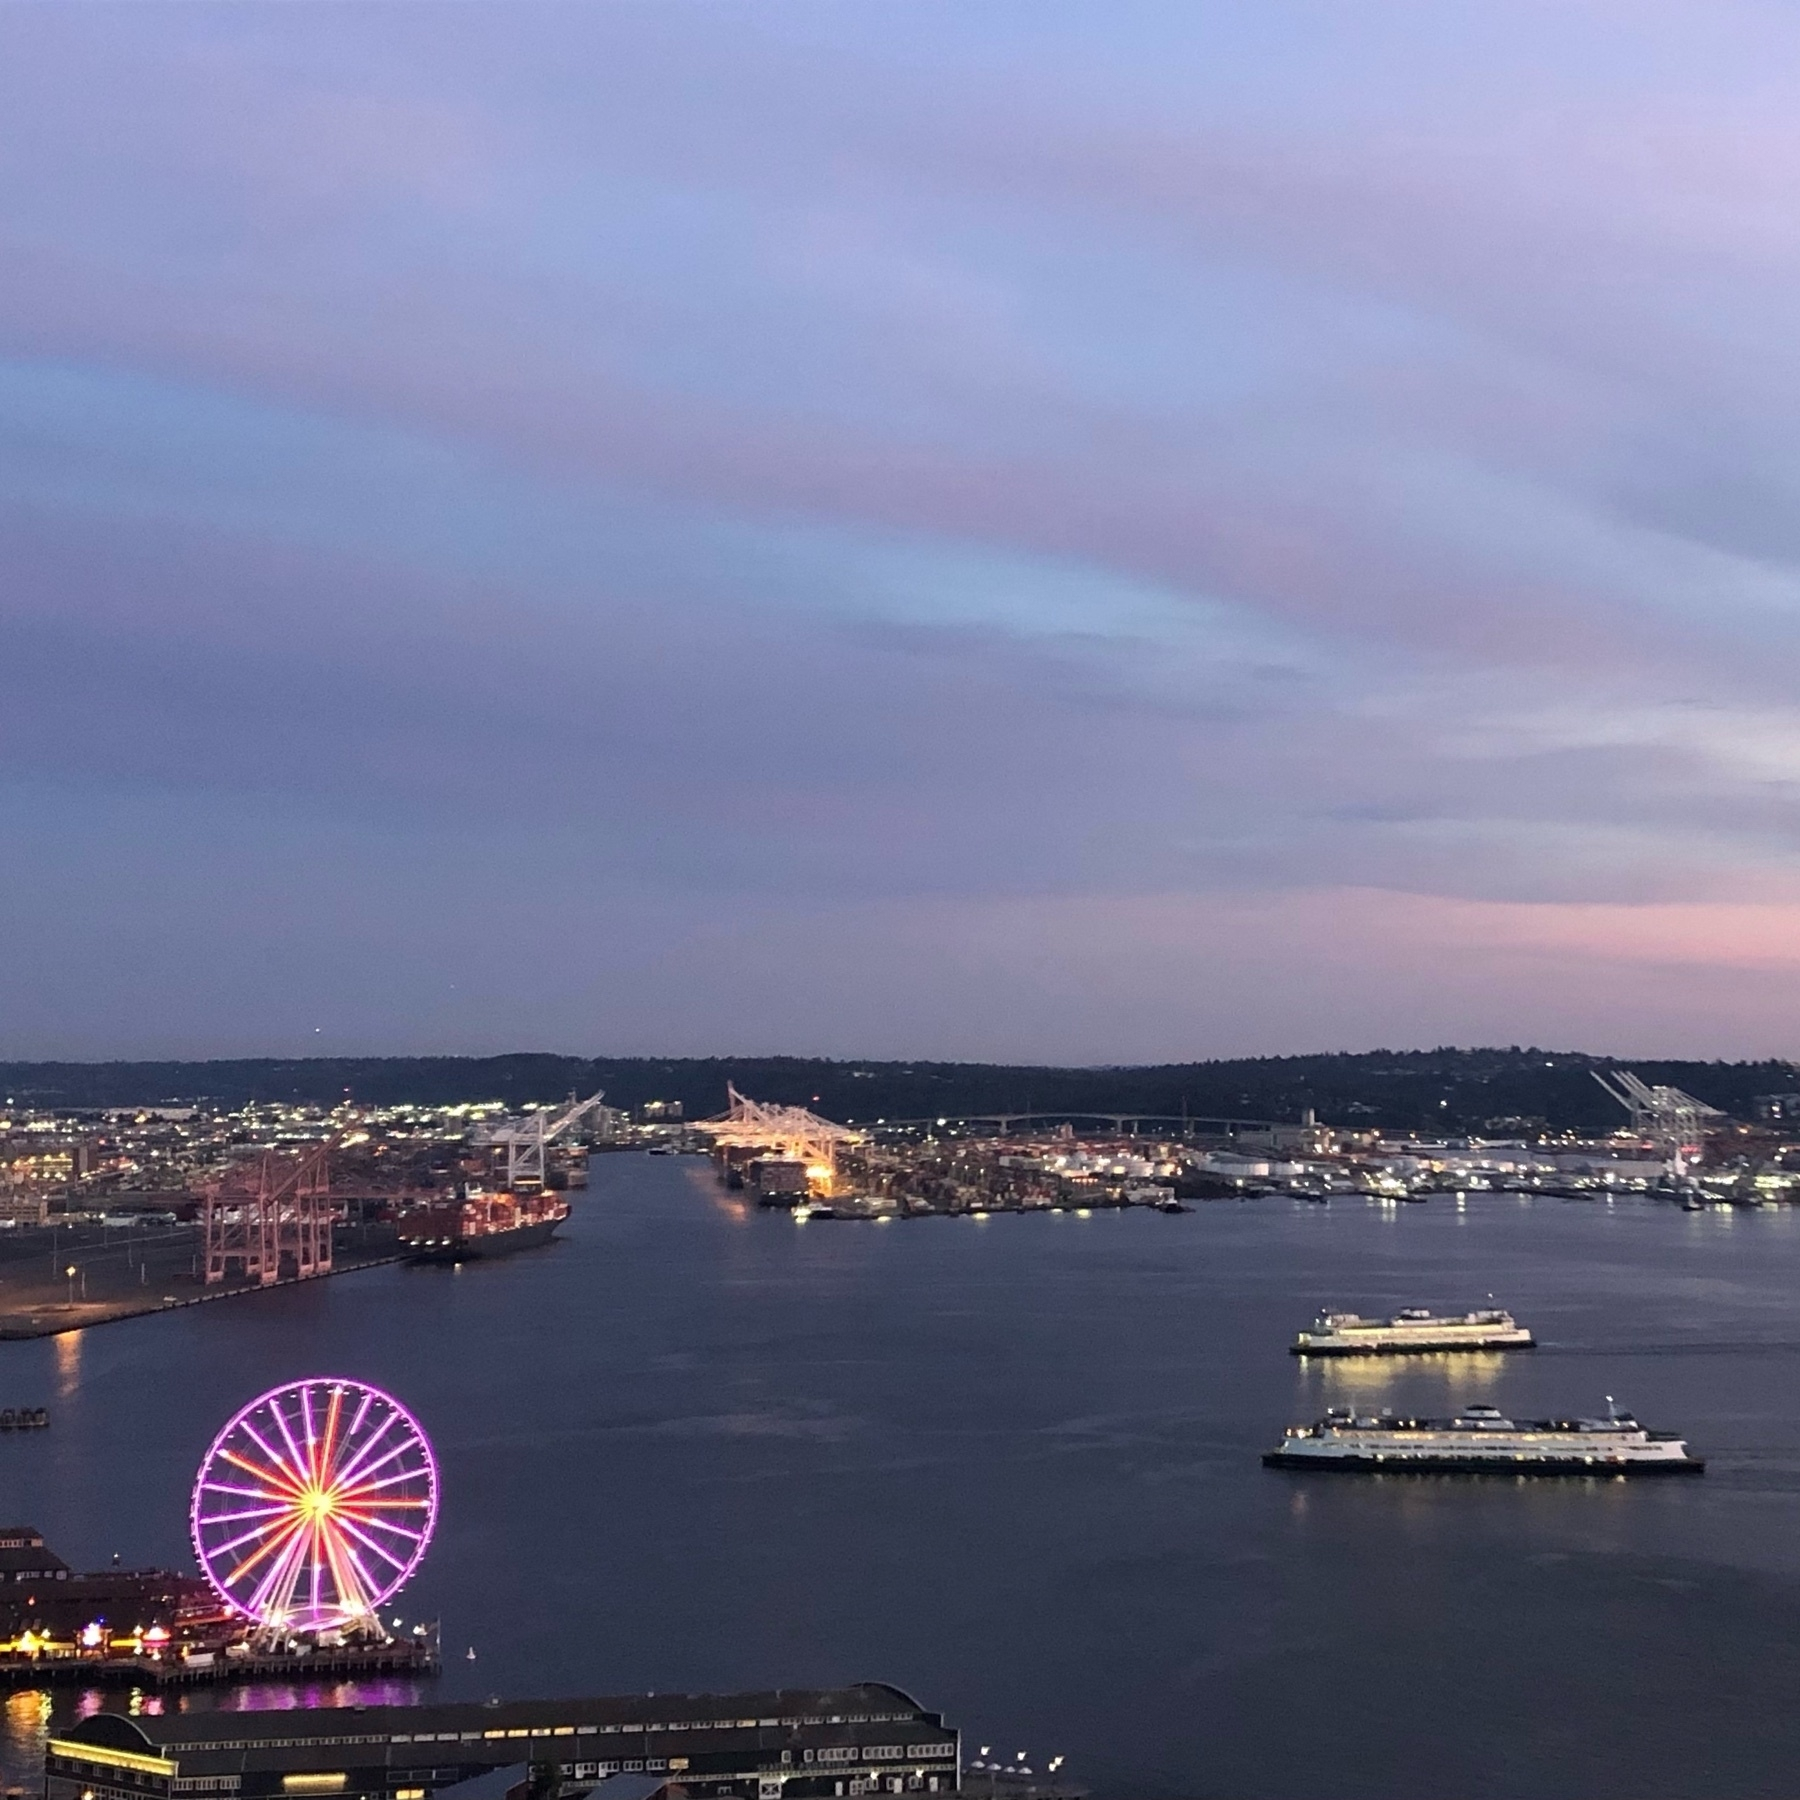 A neon ferris wheel and two long, low ferry boats beneath a pink and blue cloudy sky.